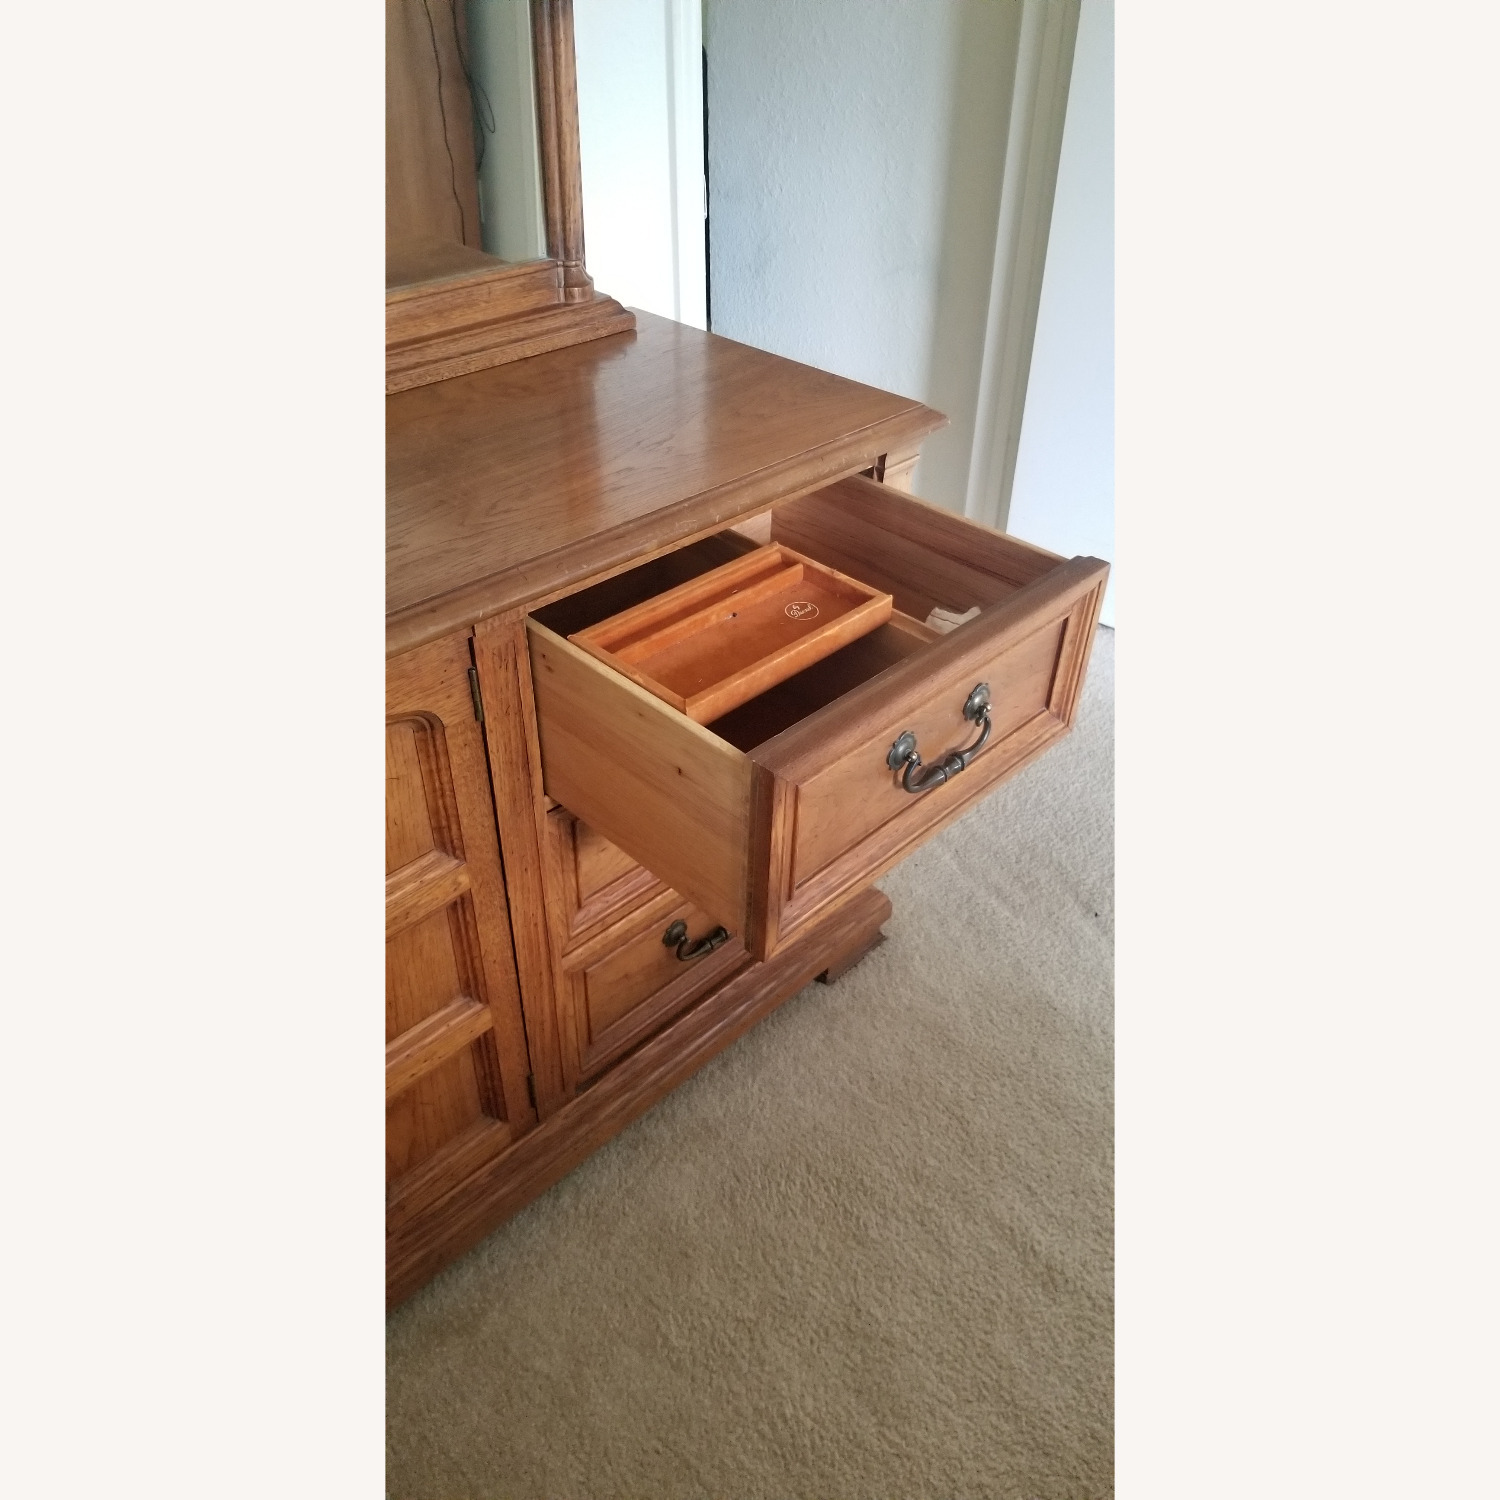 Vintage Drexel Dresser with two Large Mirrors - image-5